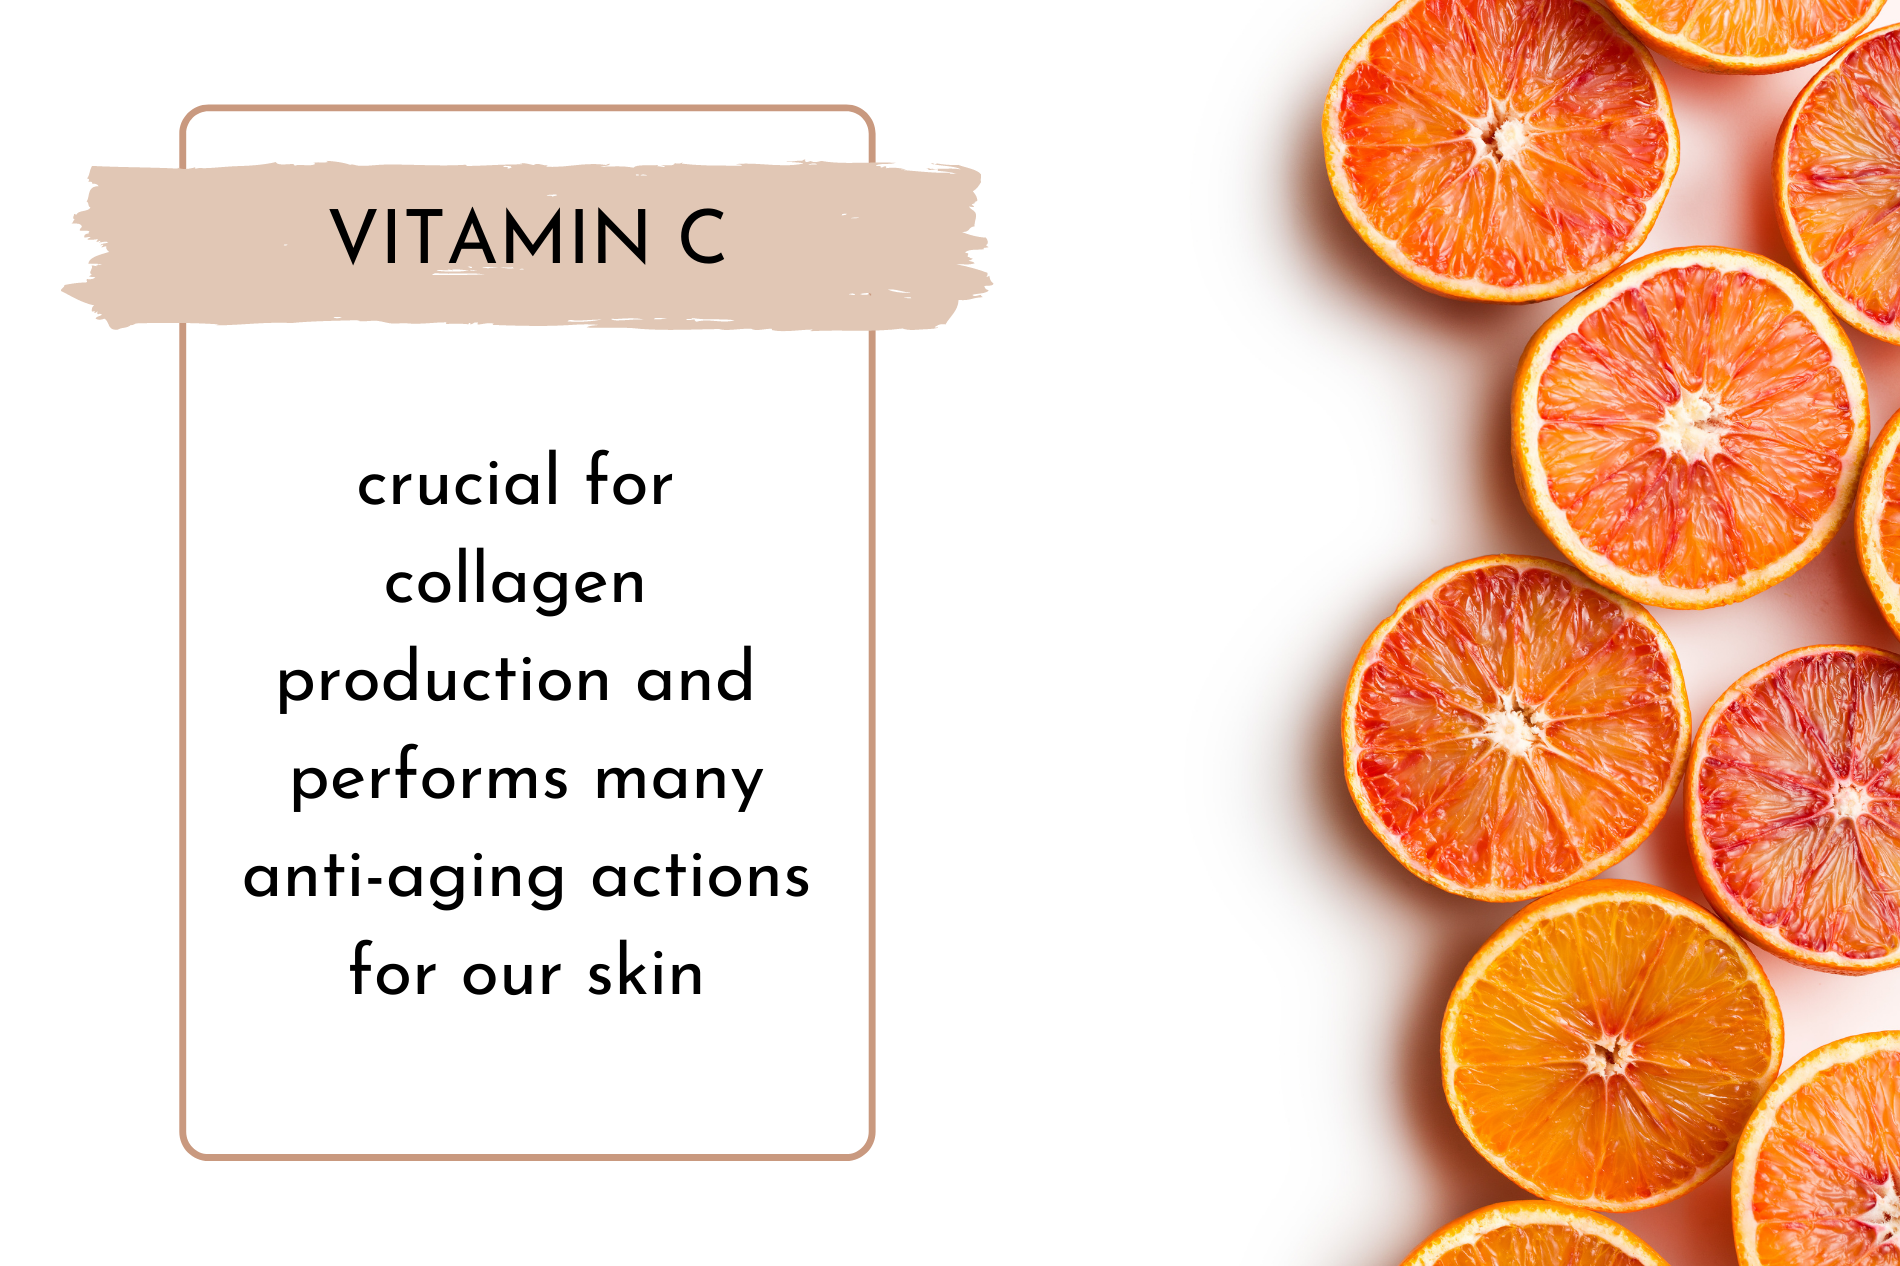 Vitamin C is crucial for collagen production! By Anato